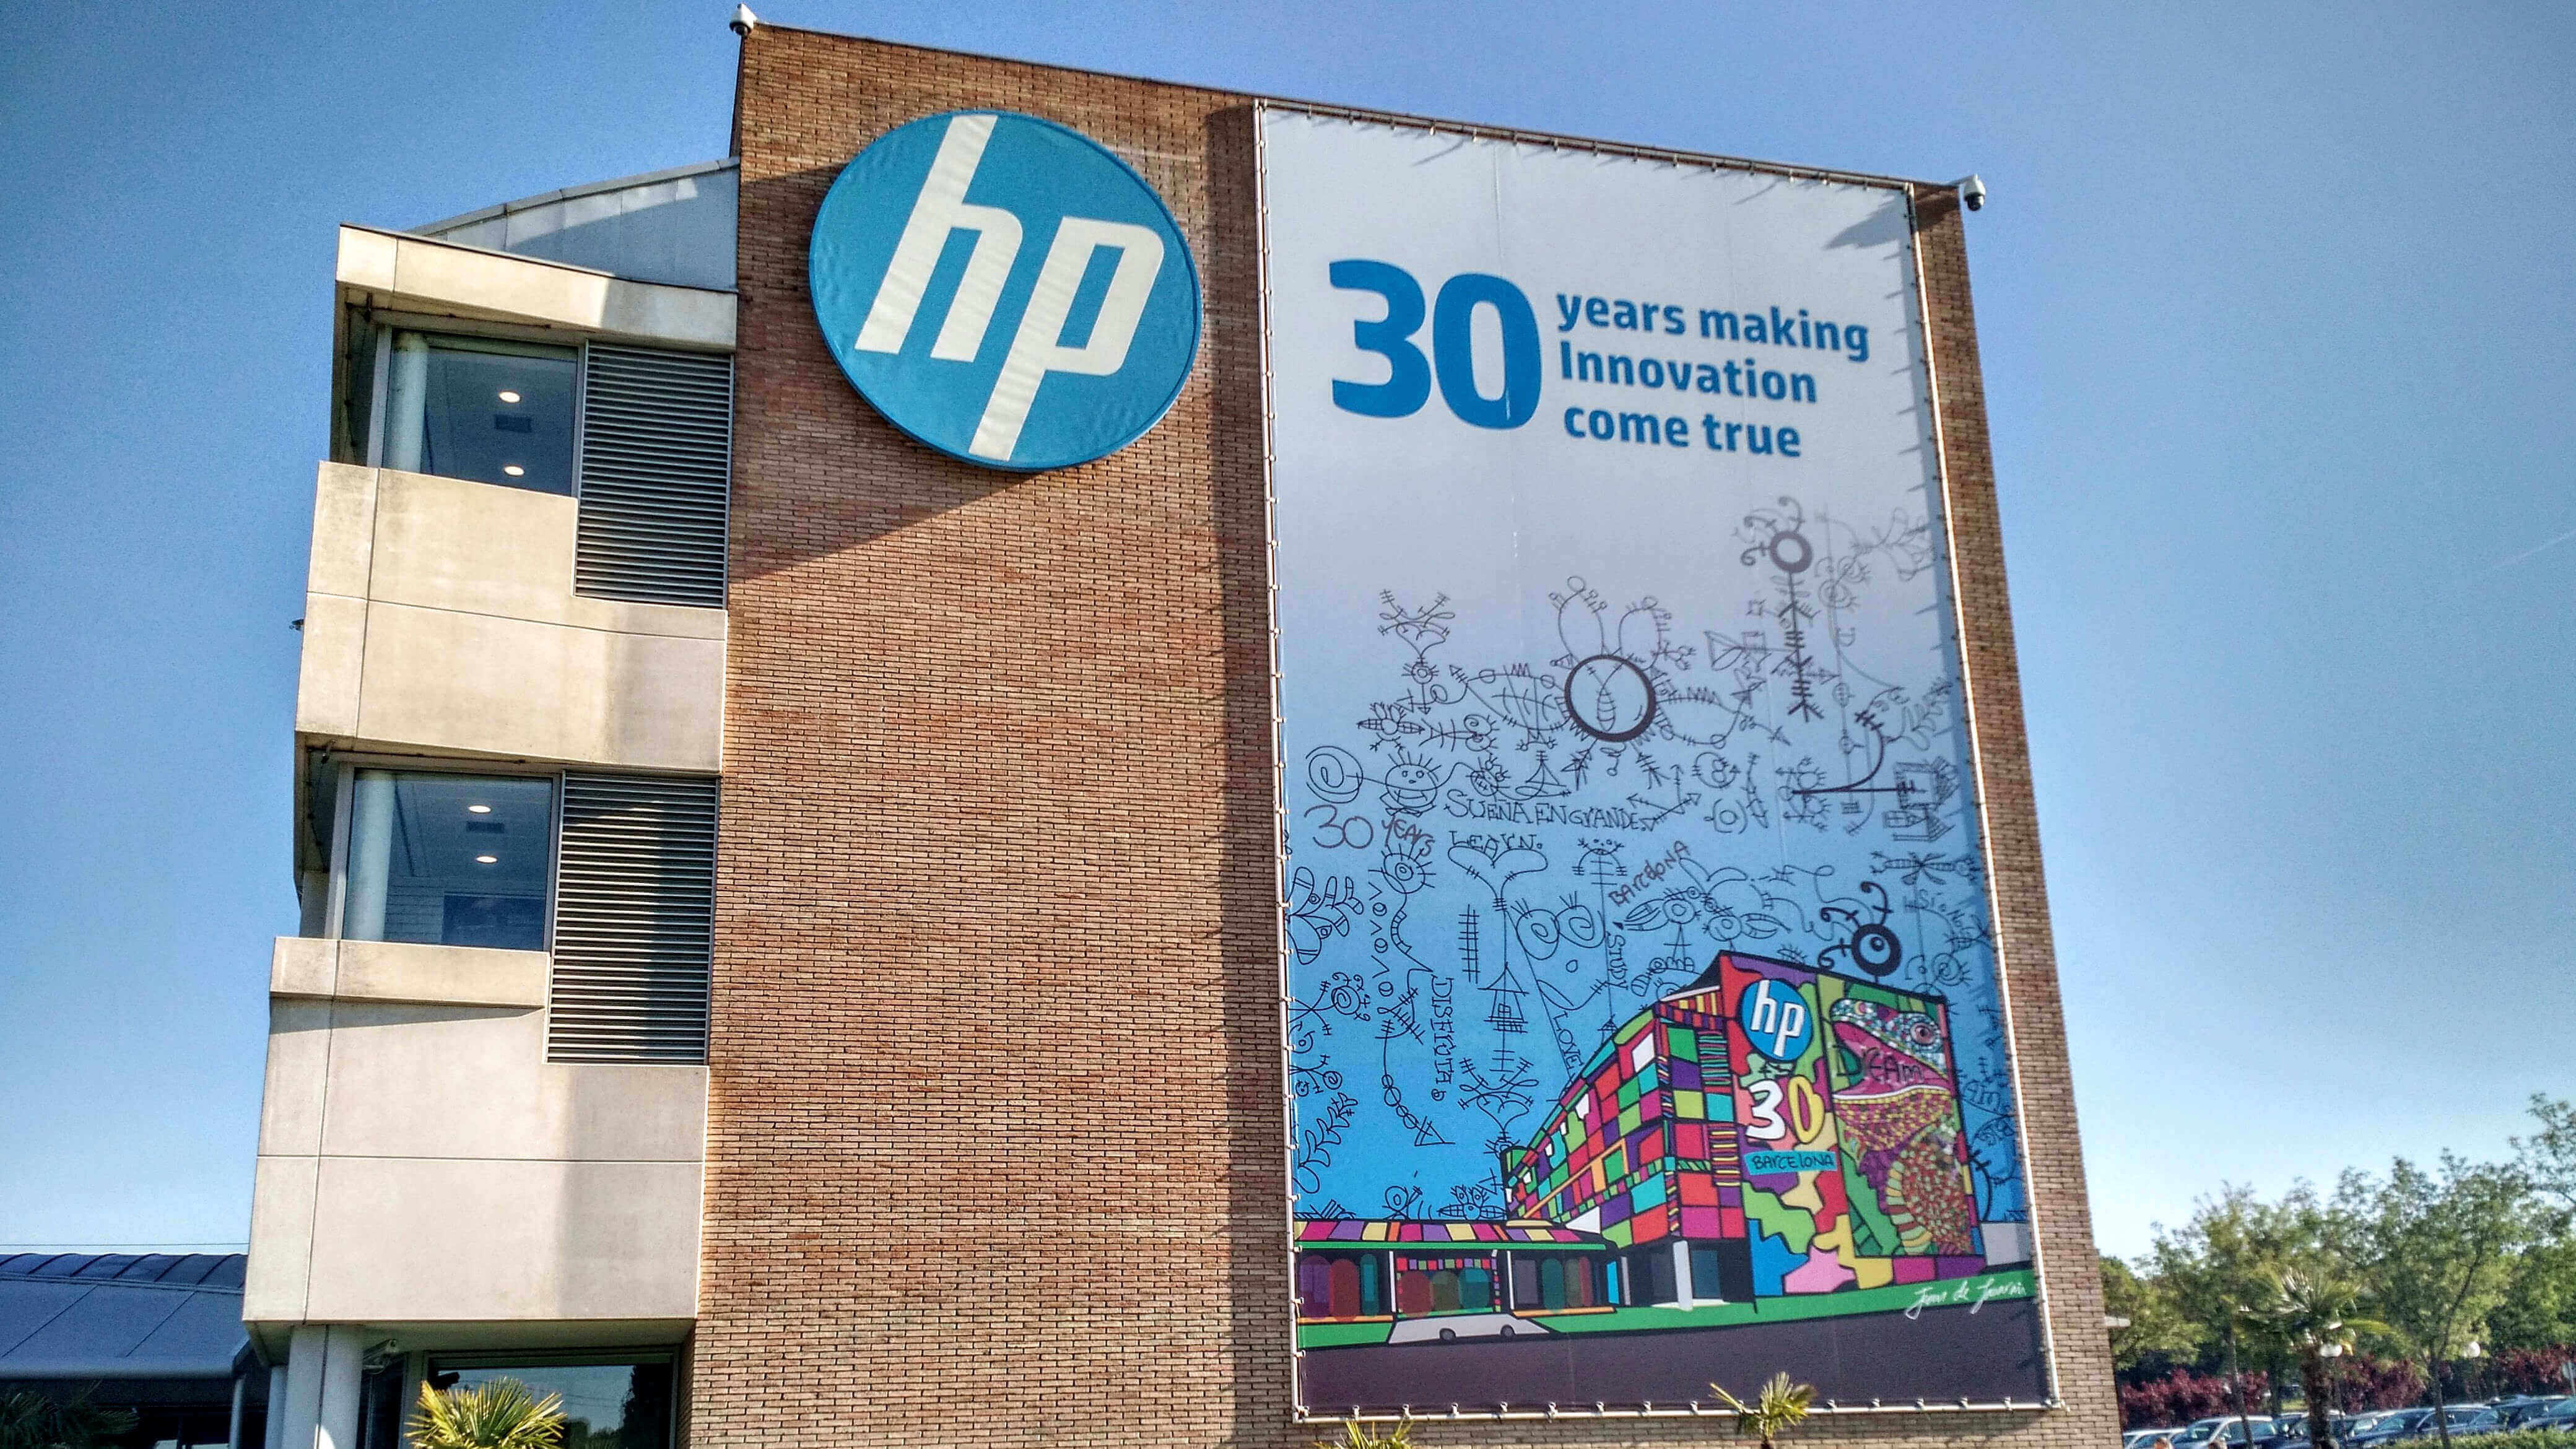 With Multi Jet Fusion, HP Challenges Injection Molding | All3DP